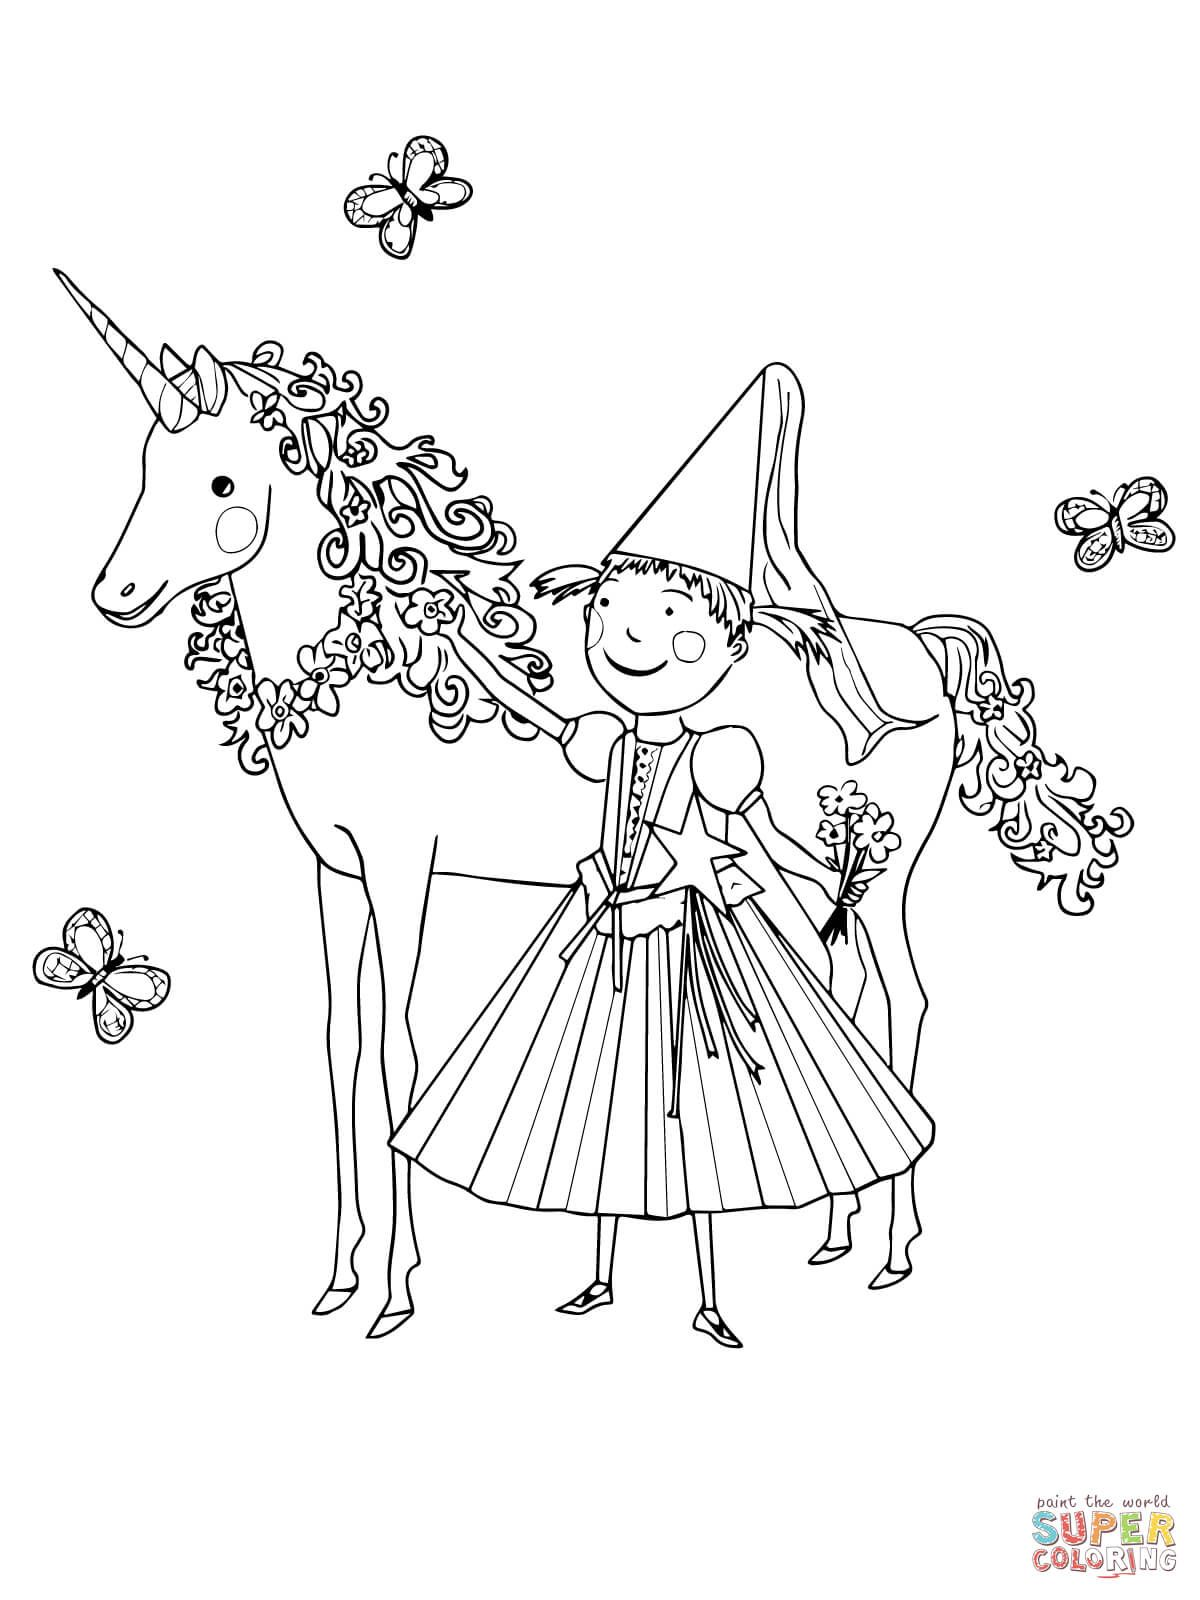 Pinkalicious Coloring Pages Indonesia on a budget